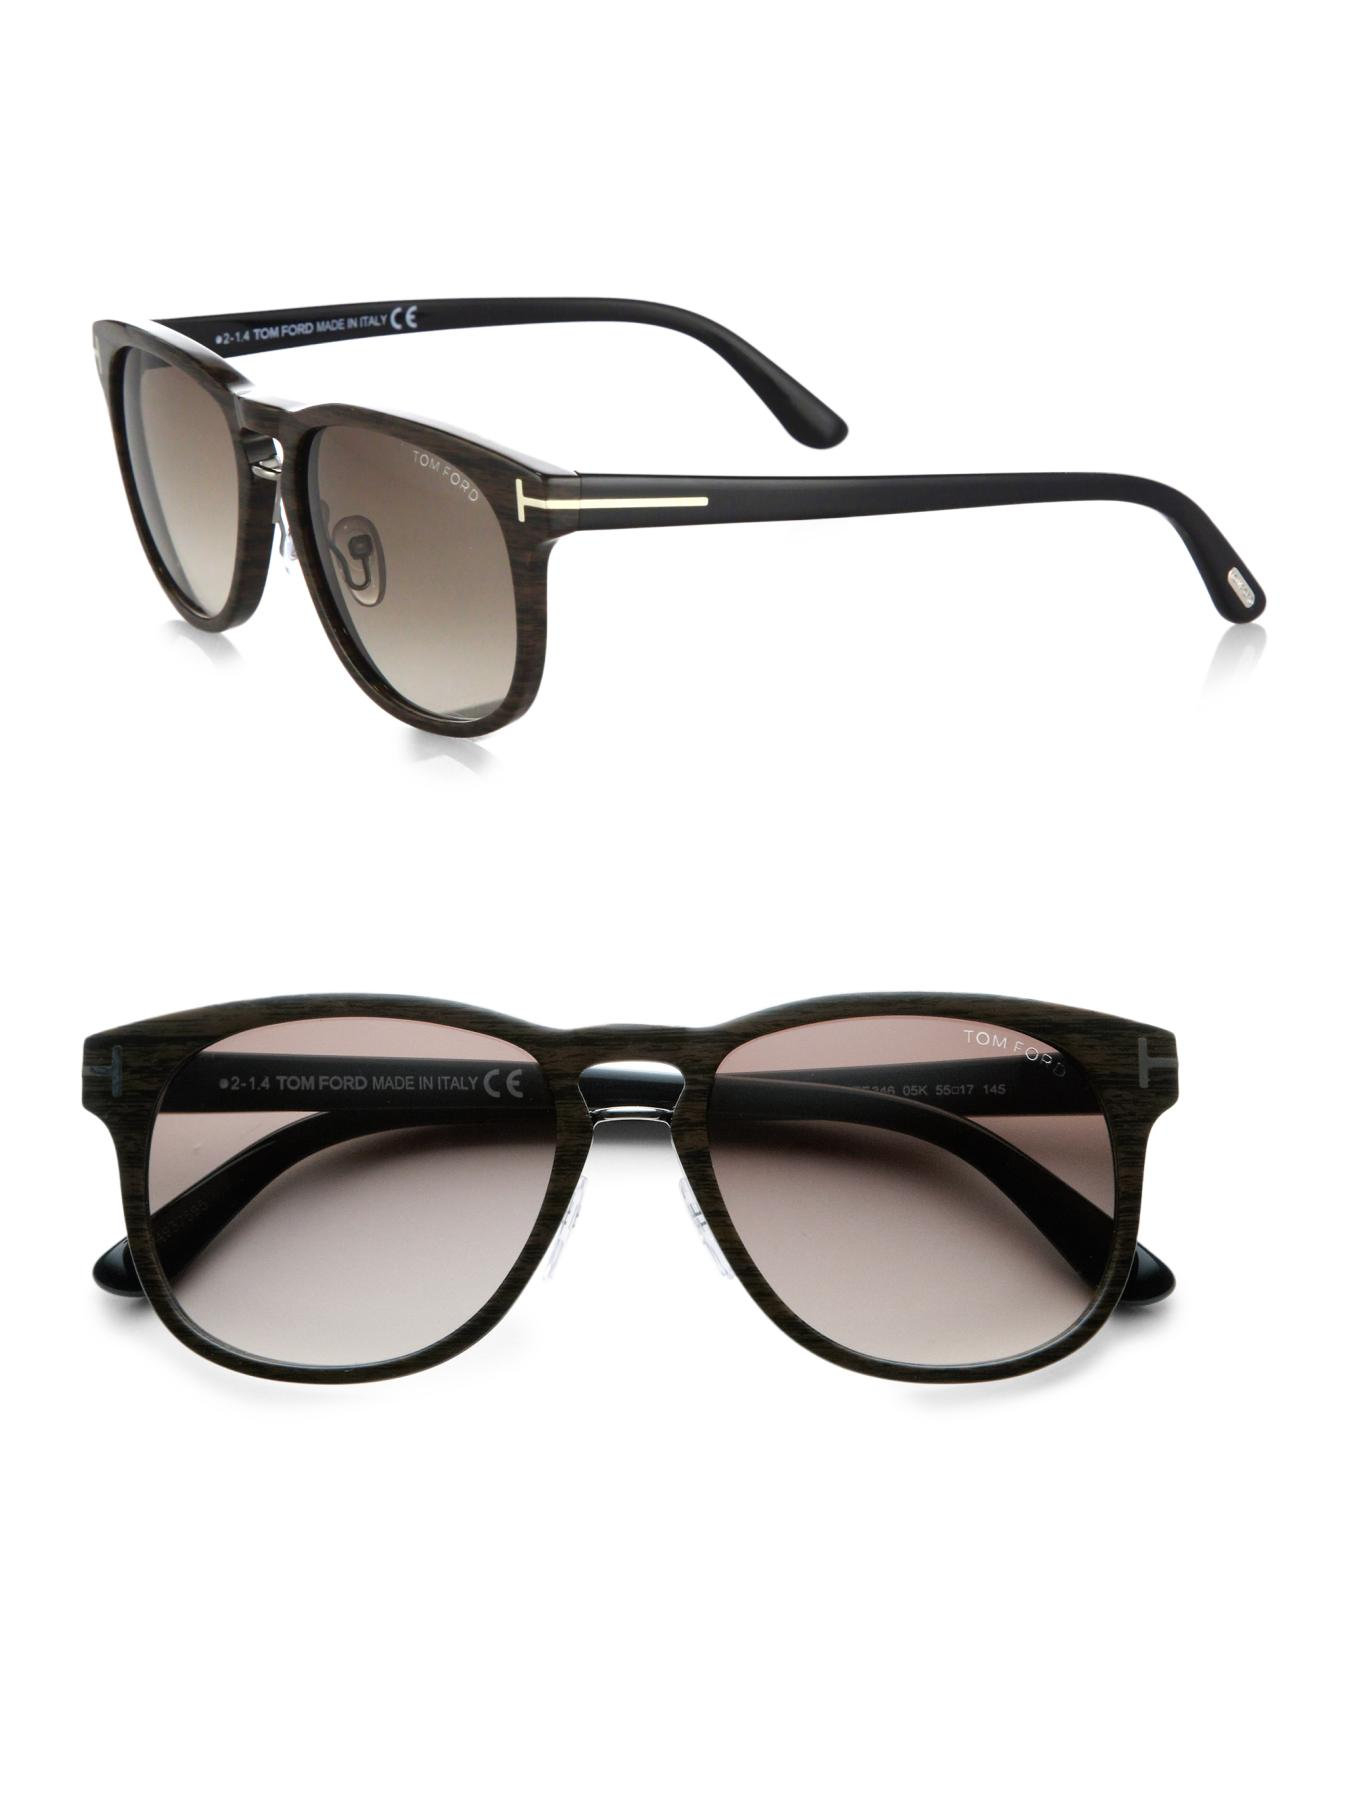 40d3ca336050 Men Tom Ford Sunglasses